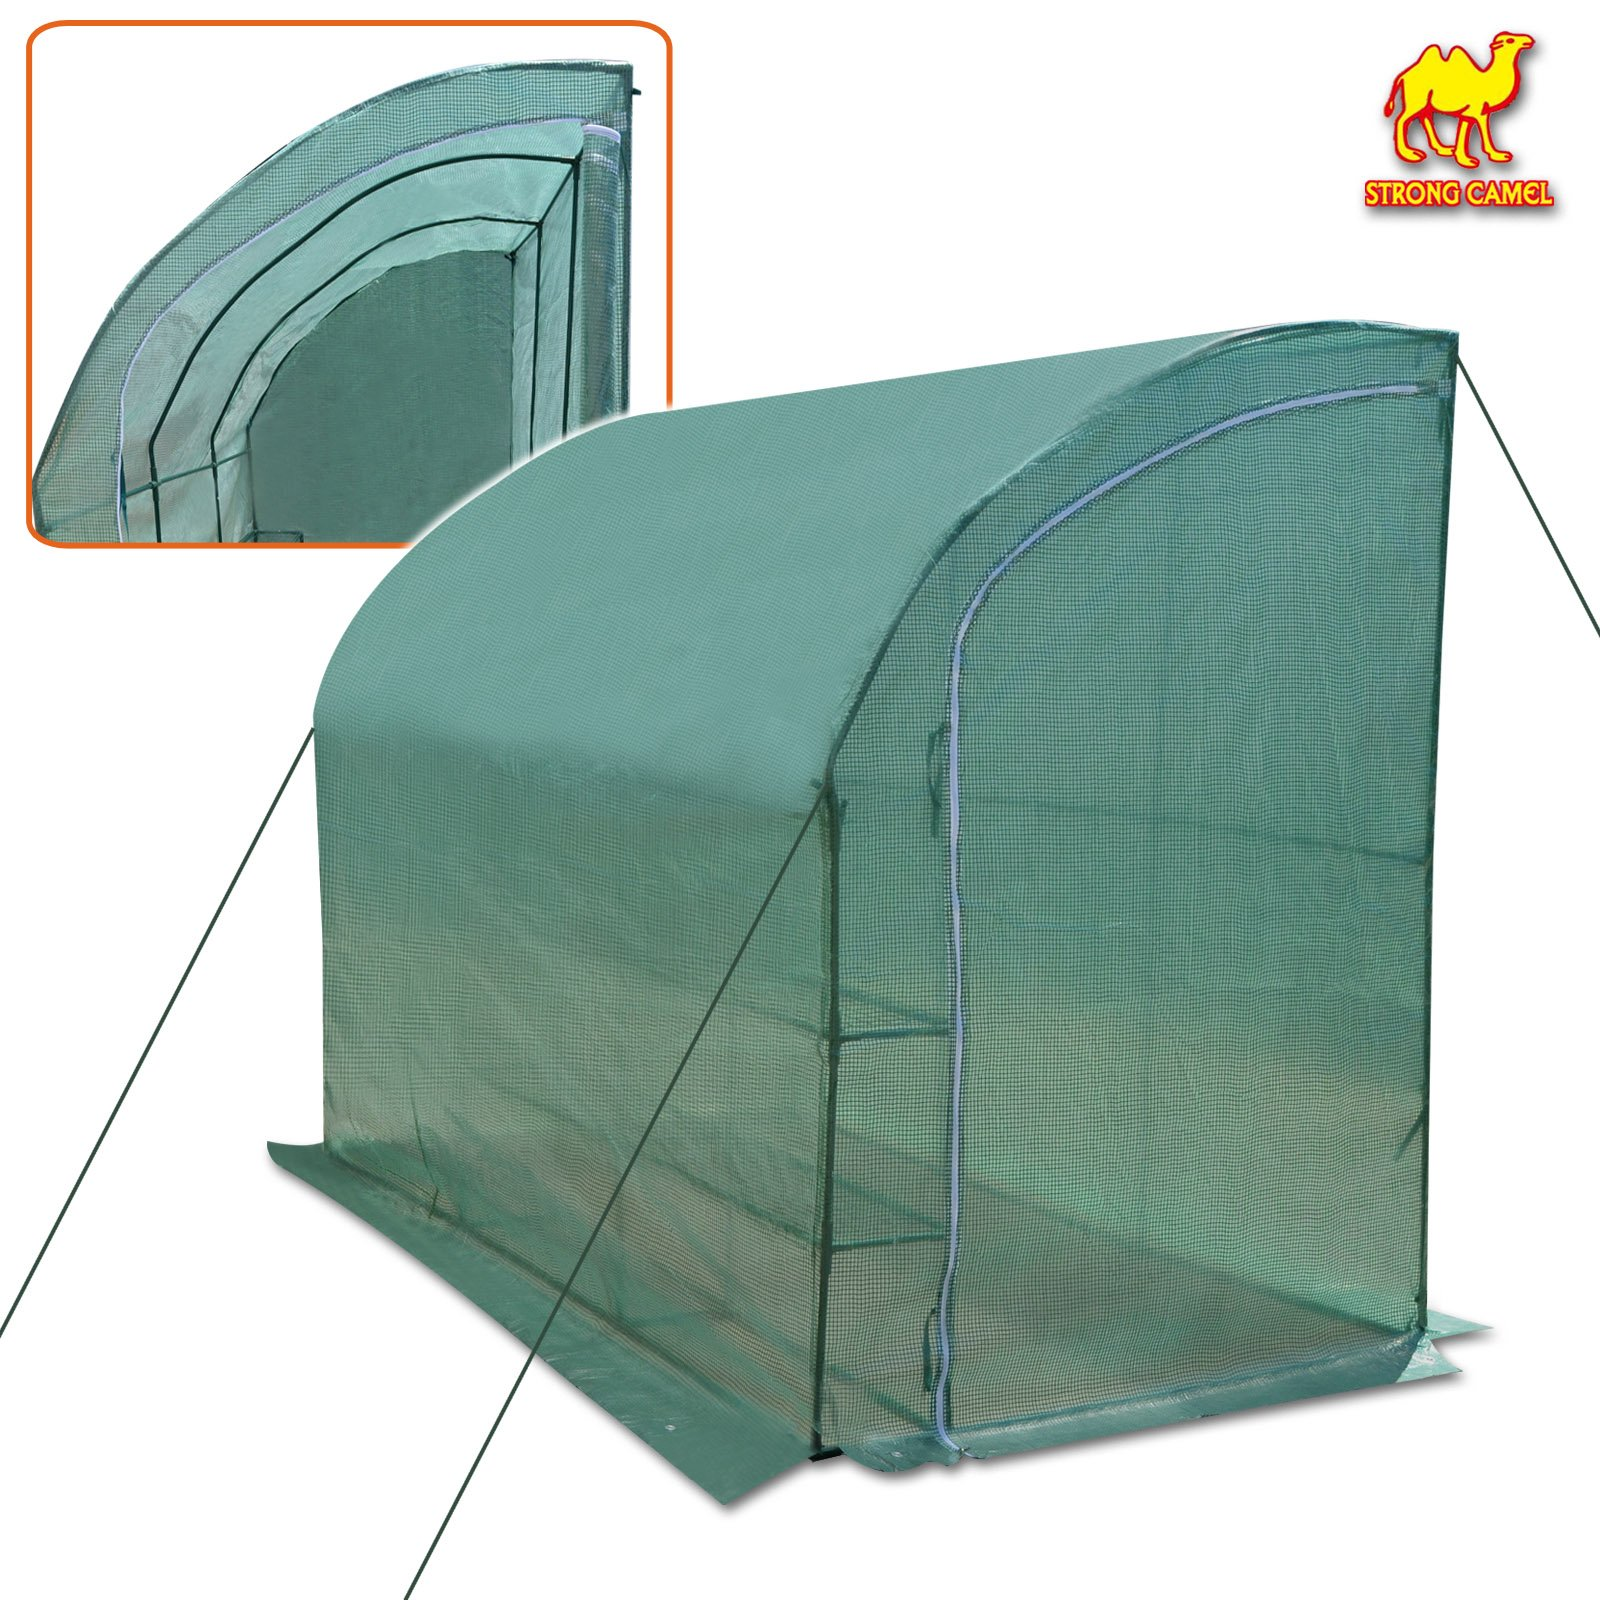 Strong Camel New Large Walk-in Wall Greenhouse 10x5x7'H w 3 Tiers/6 Shelves Gardening (Green) by Strong Camel (Image #1)